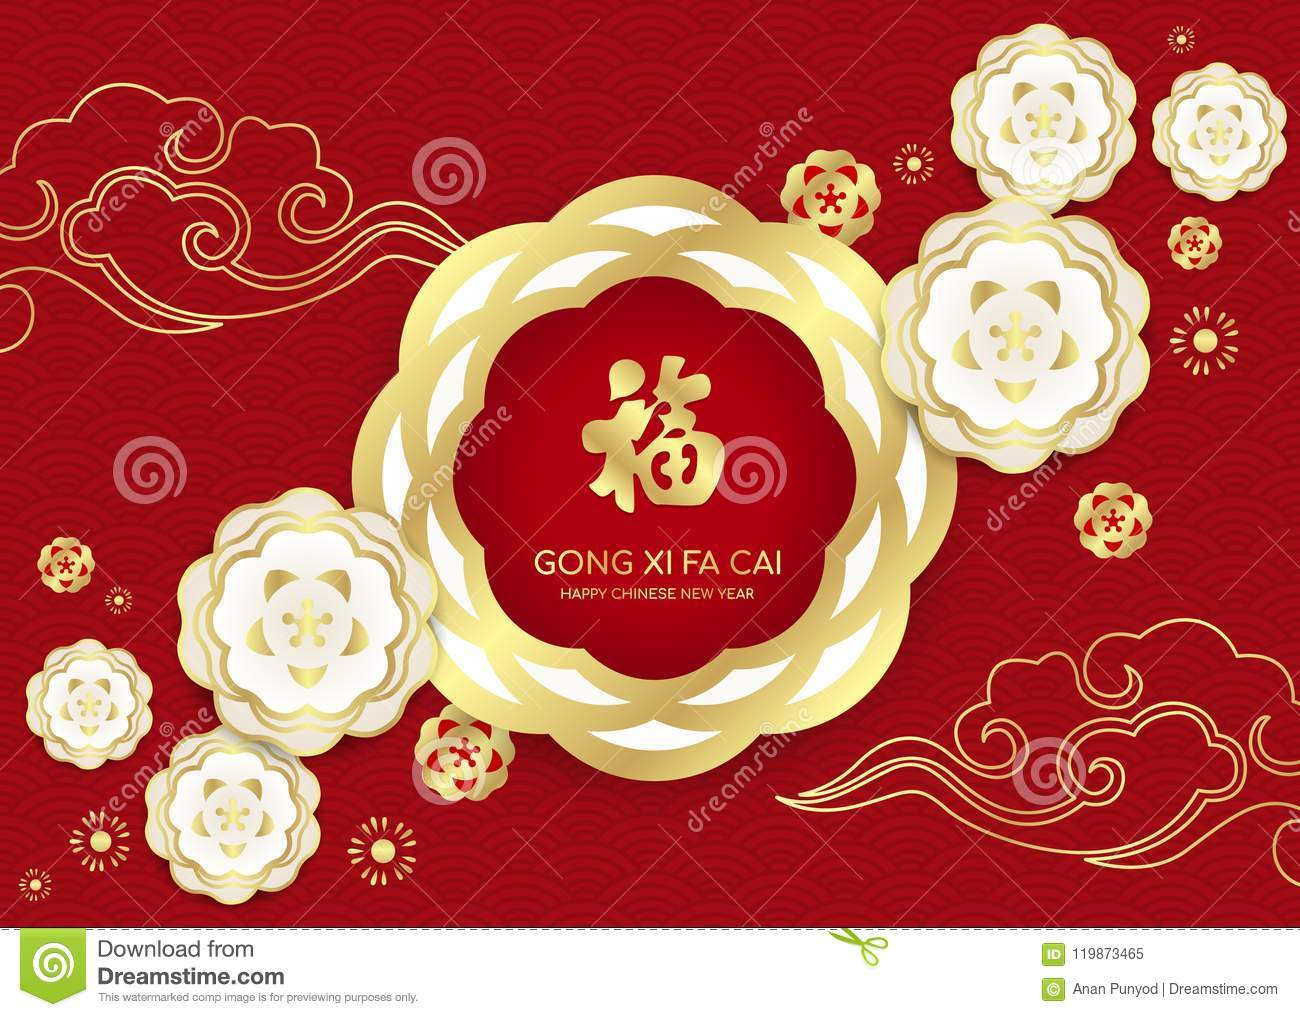 happy chinese new year card with gold and white peach flowers and clude on china pattern